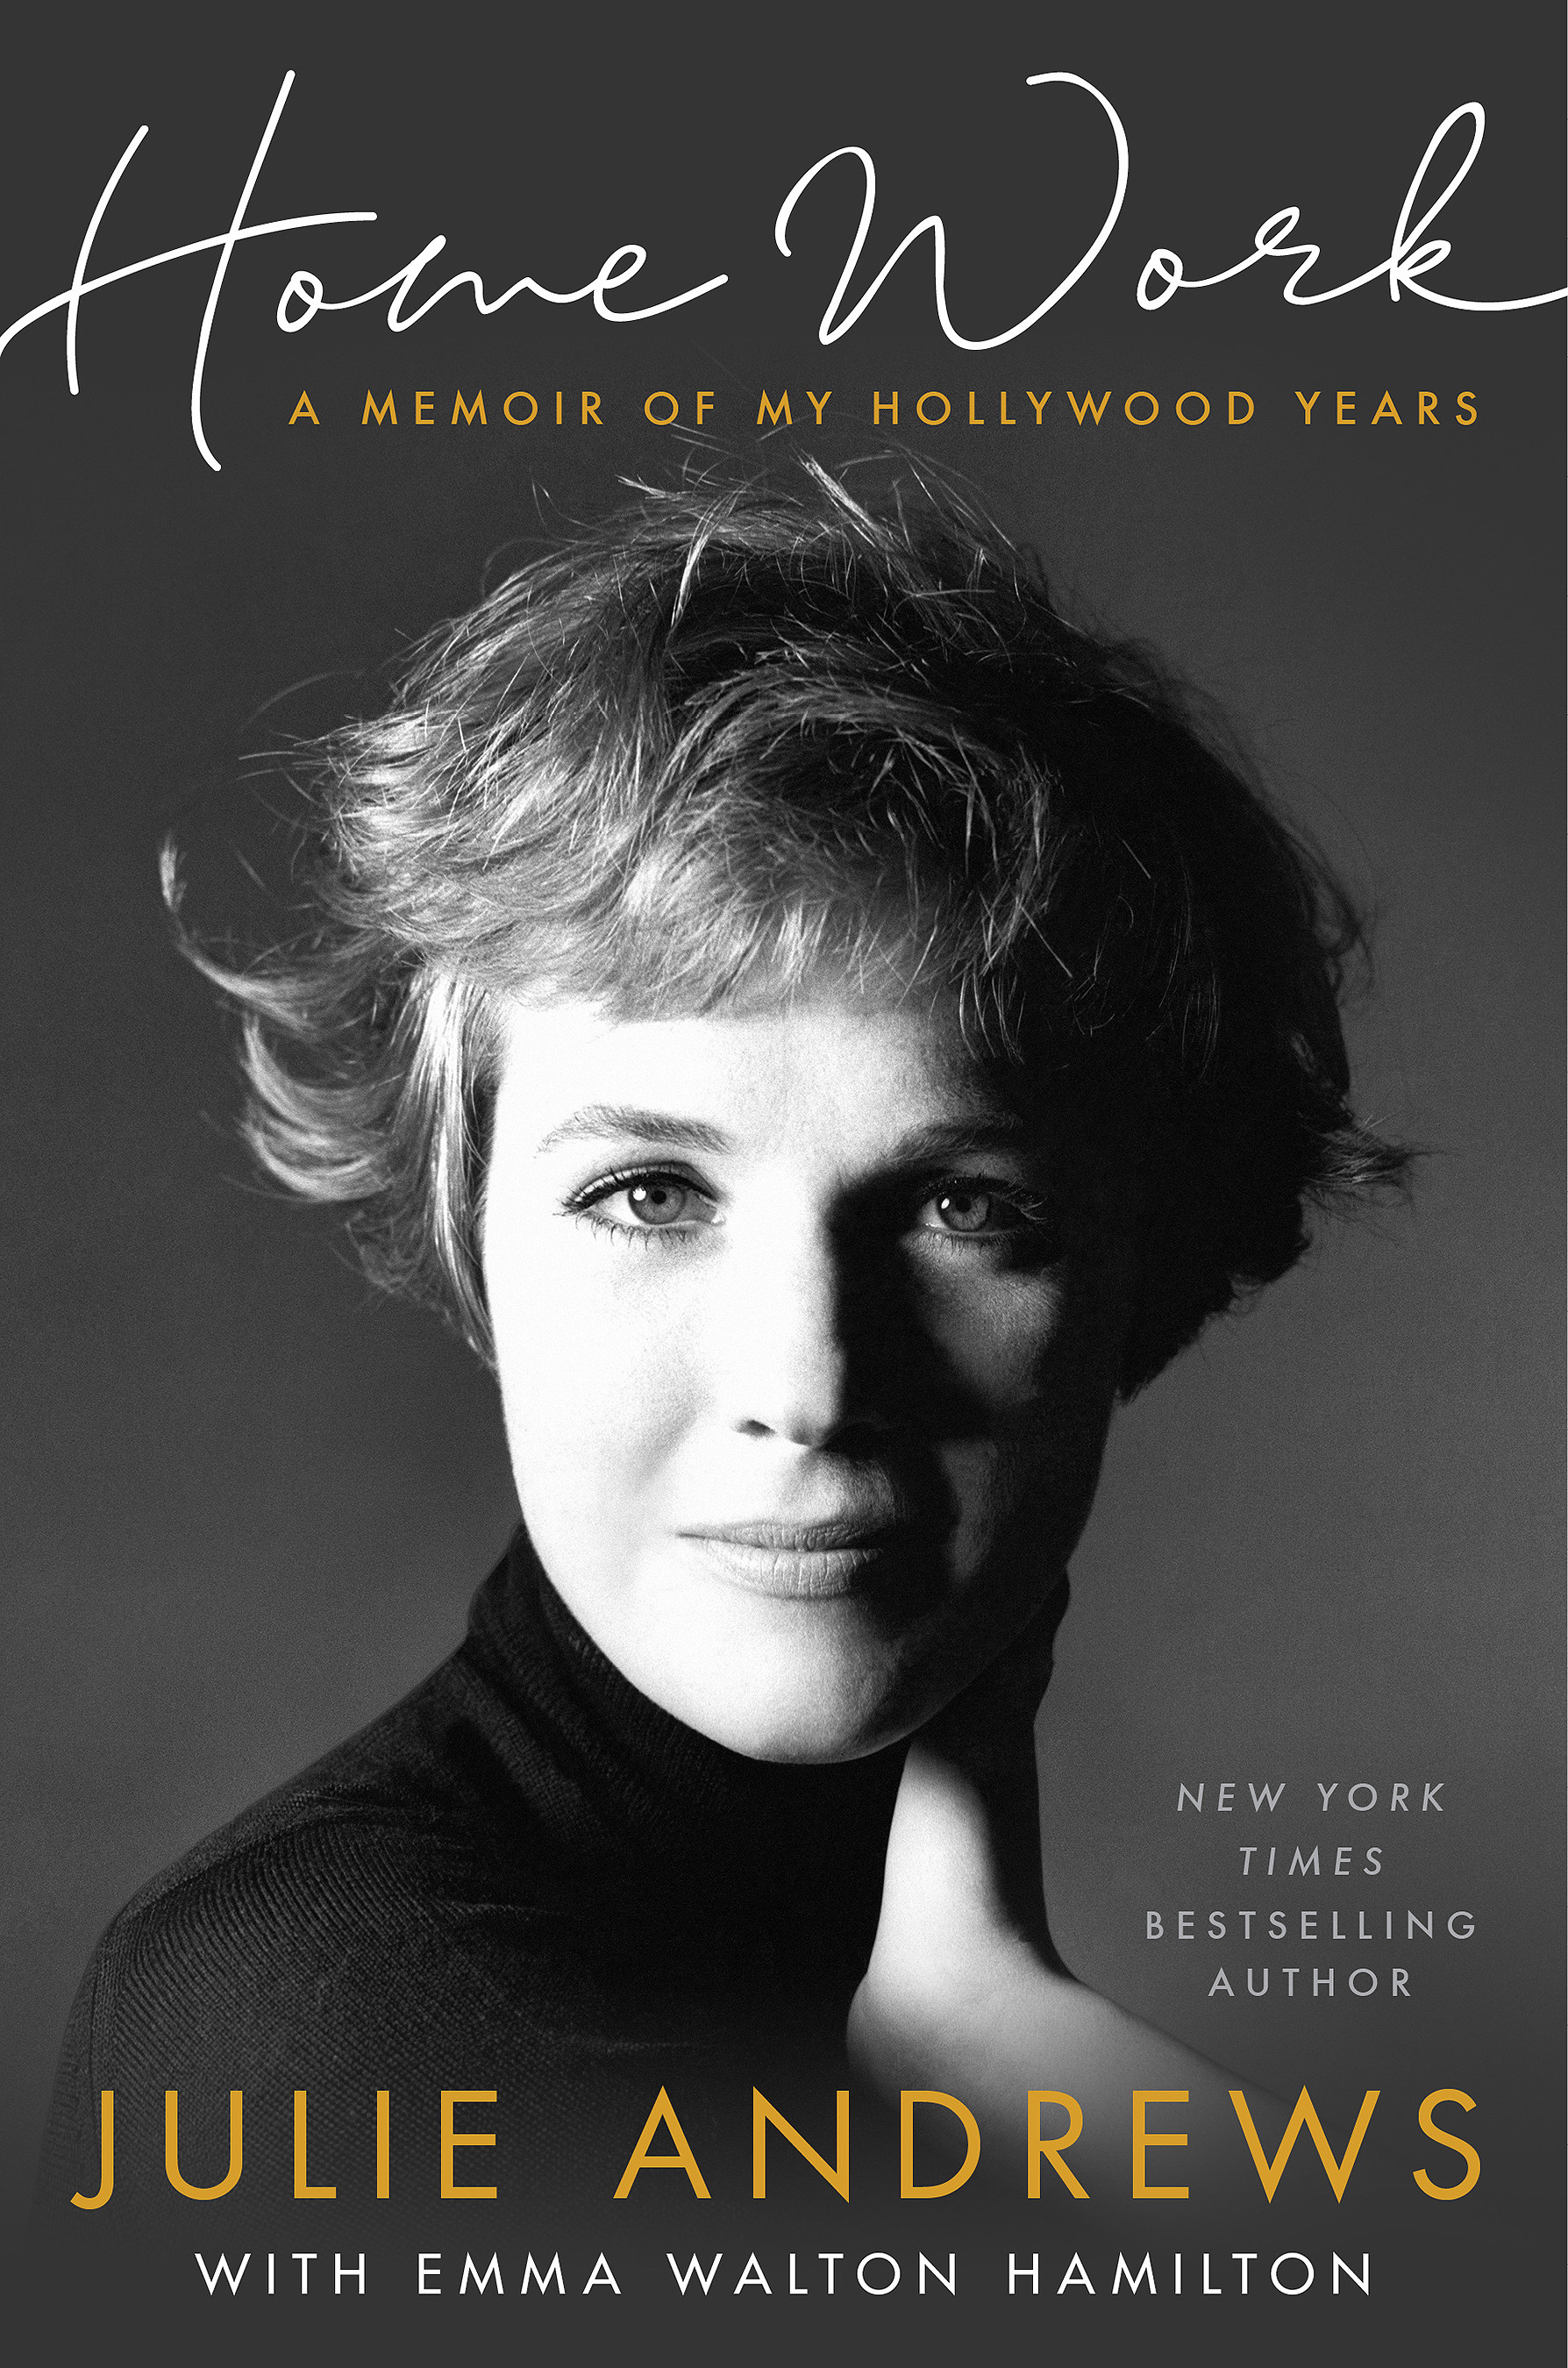 The cover of the book with a picture of Julie Andrews on it